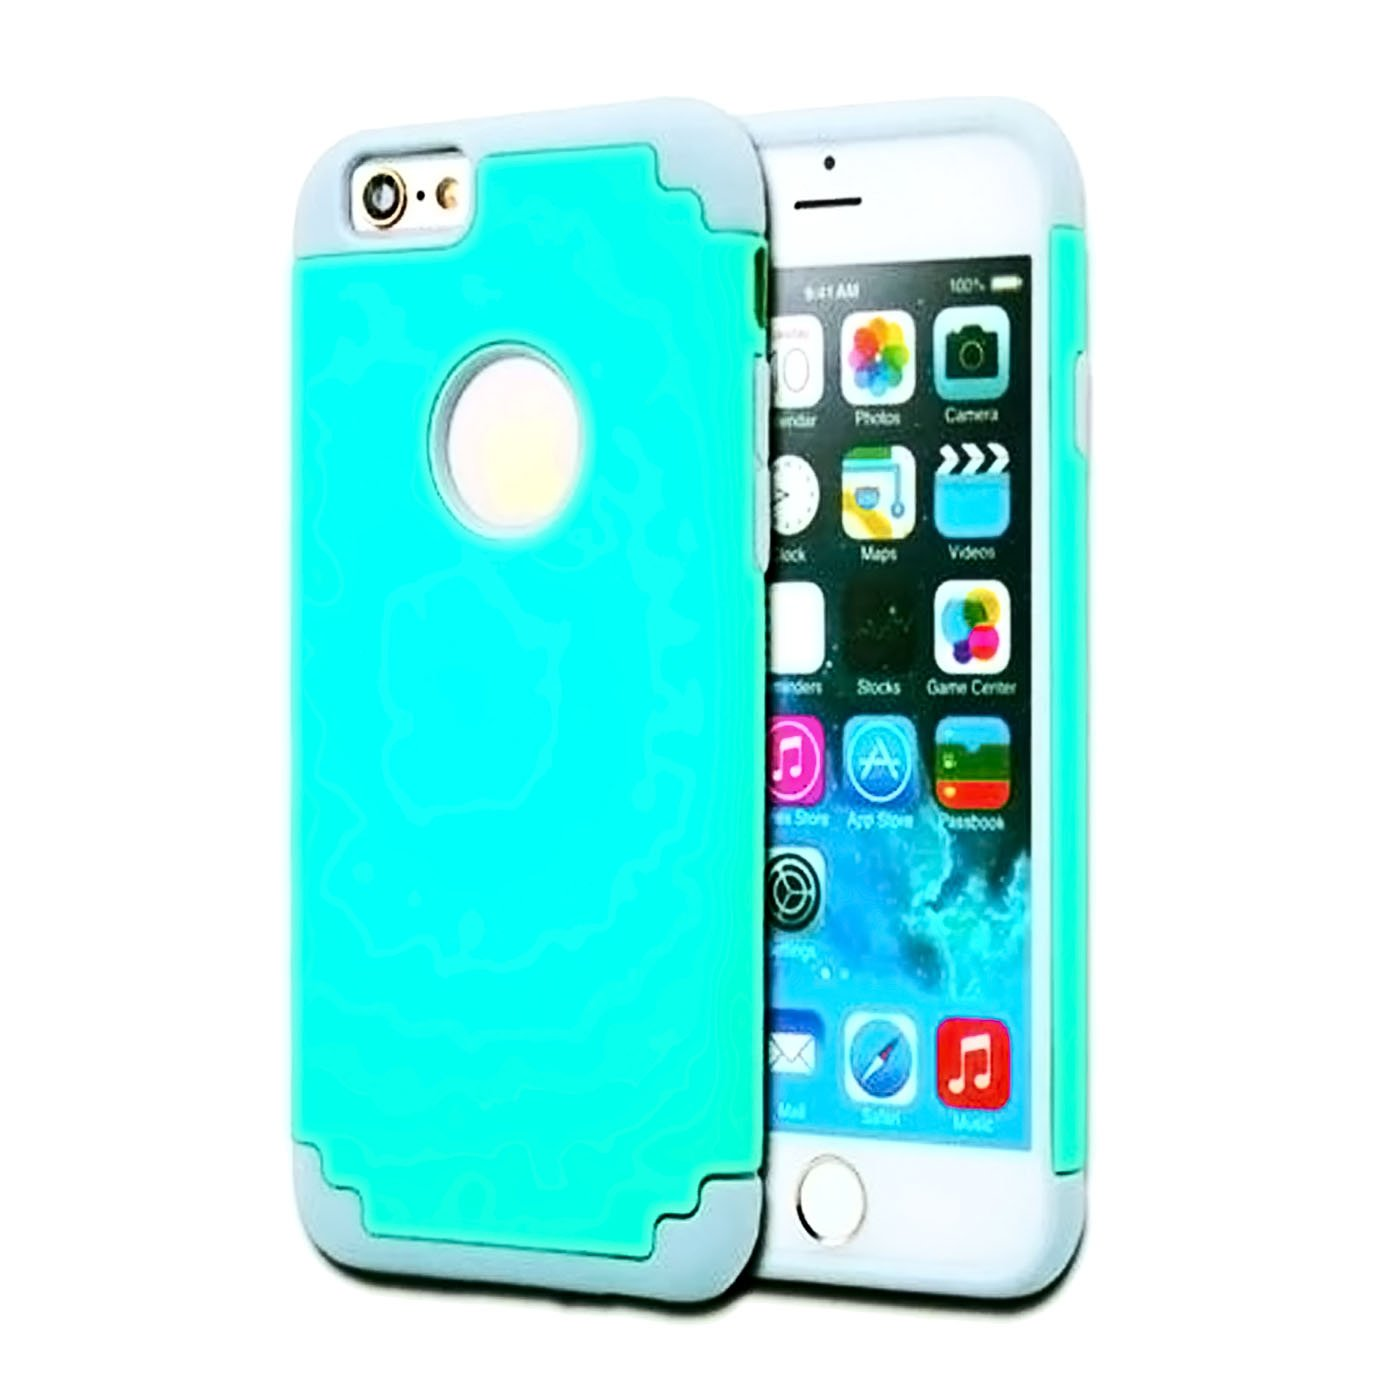 new arrivals 3737e abec5 Top 2 iphone 6 protective case ebay